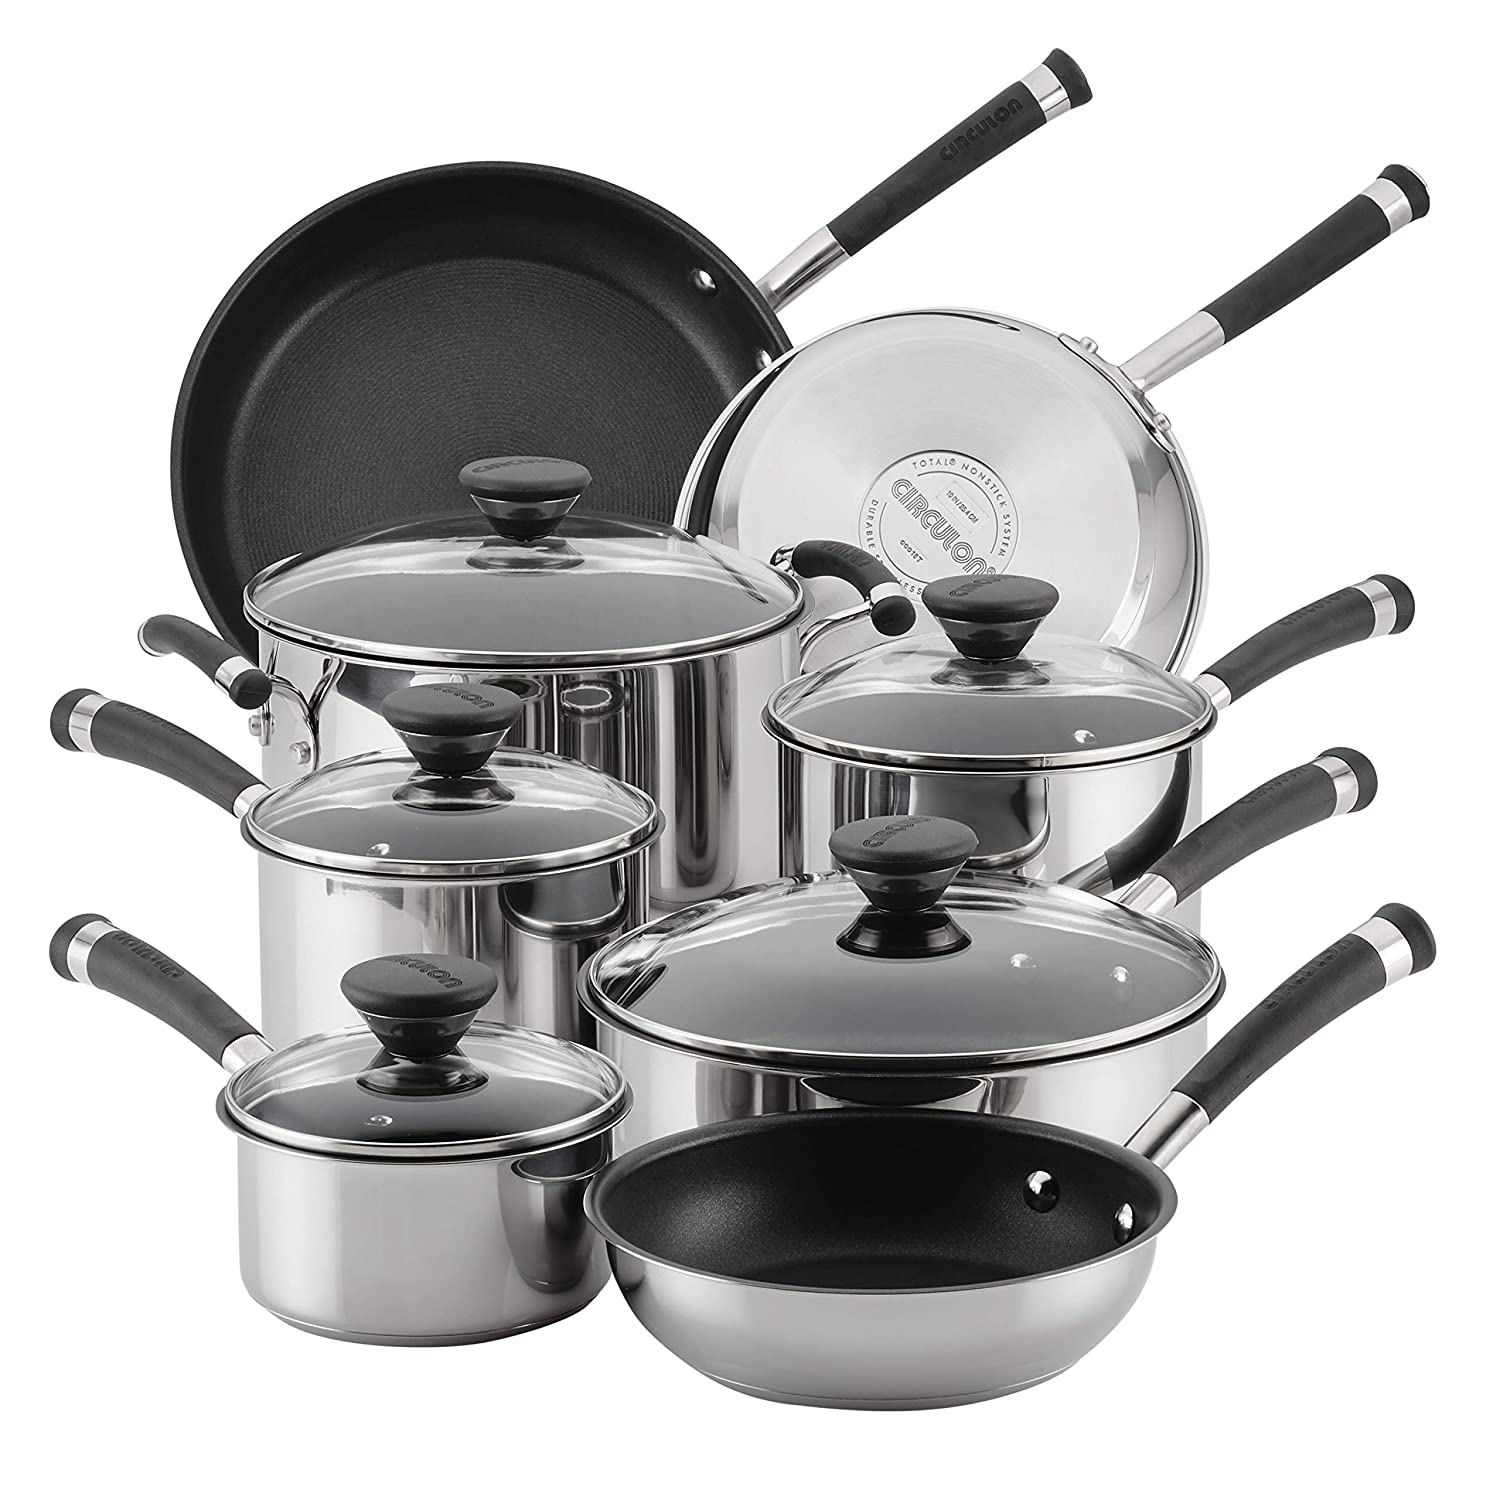 Circulon Acclaim Stainless Steel Nonstick Cookware Set, 13-Piece, Silver